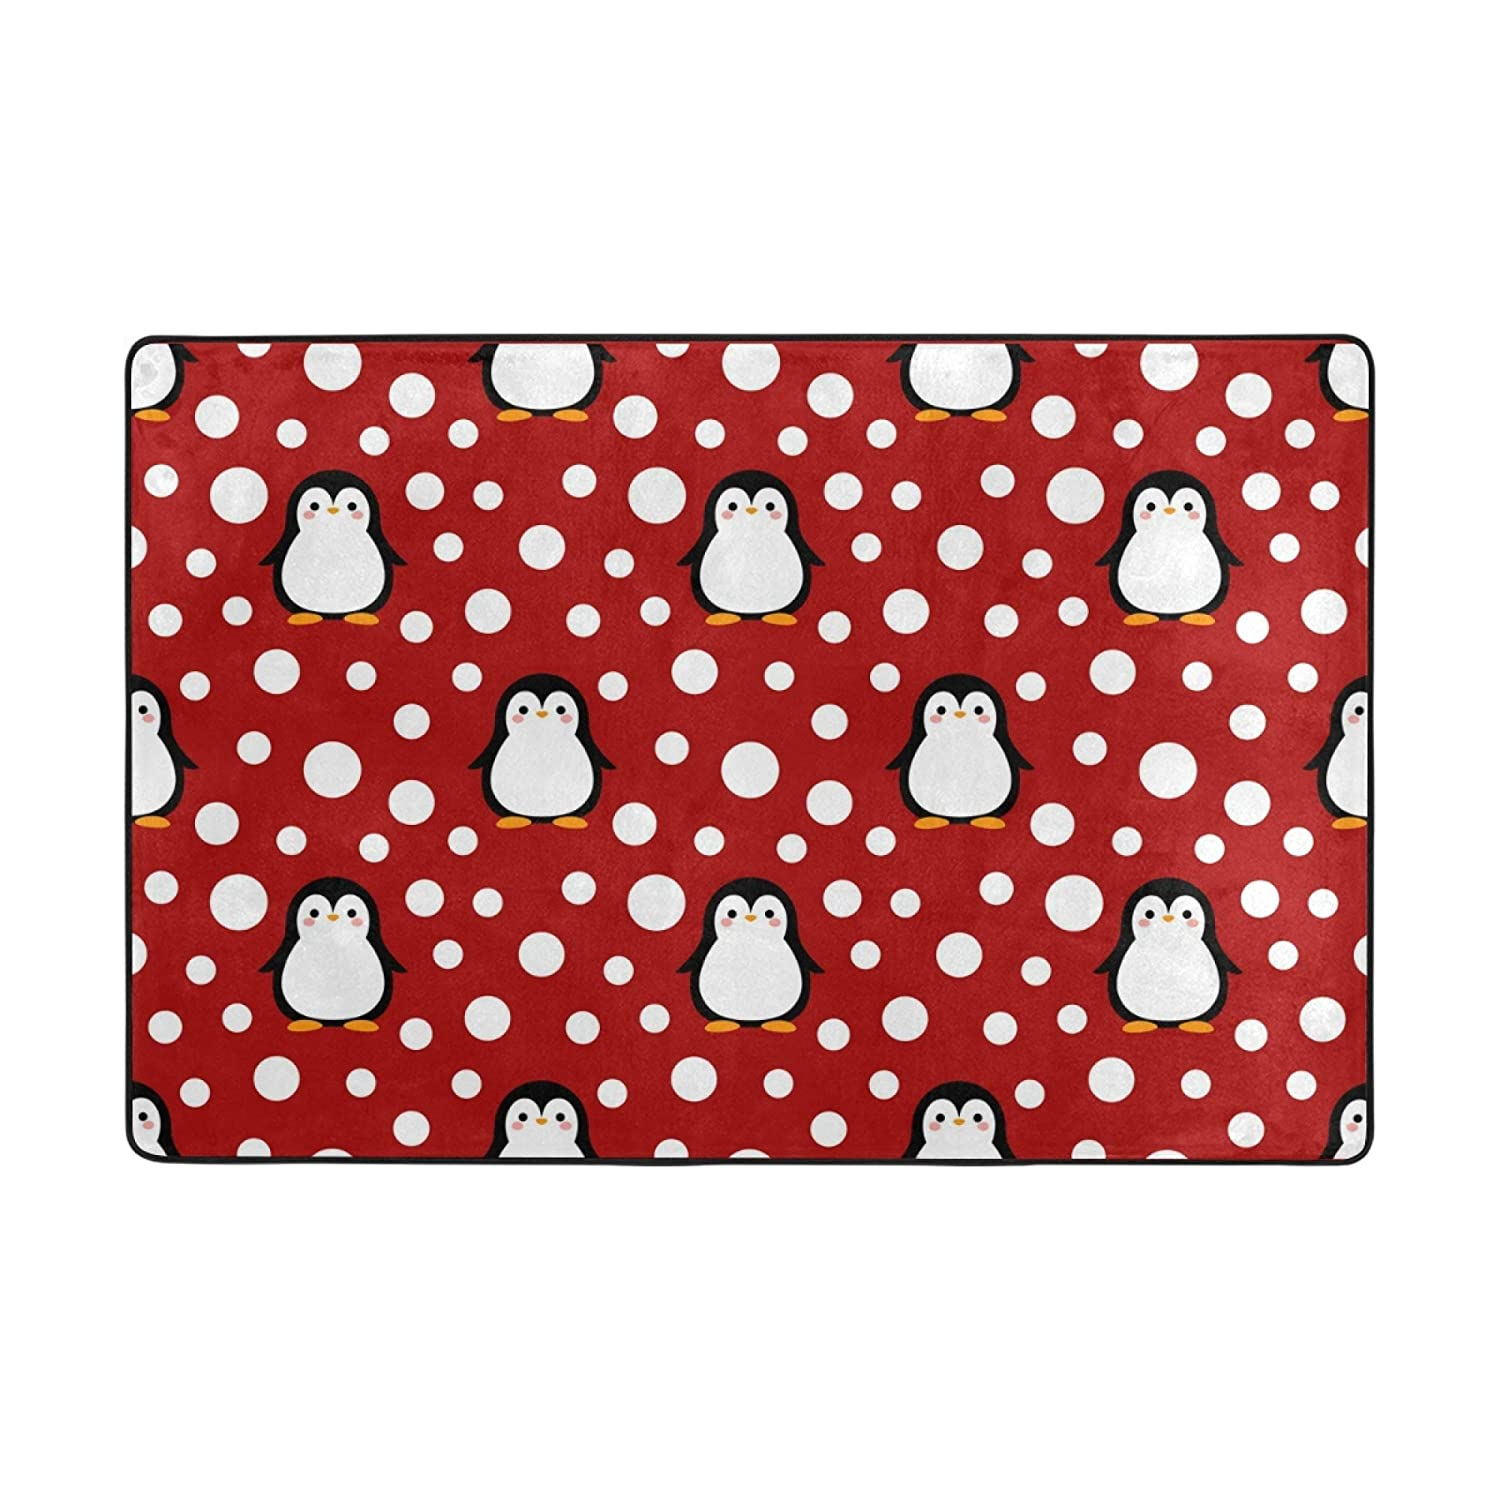 LifeCustomize Soft Large Area Rug Our shop most popular Snow Mat Cartoon Max 85% OFF Penguin with